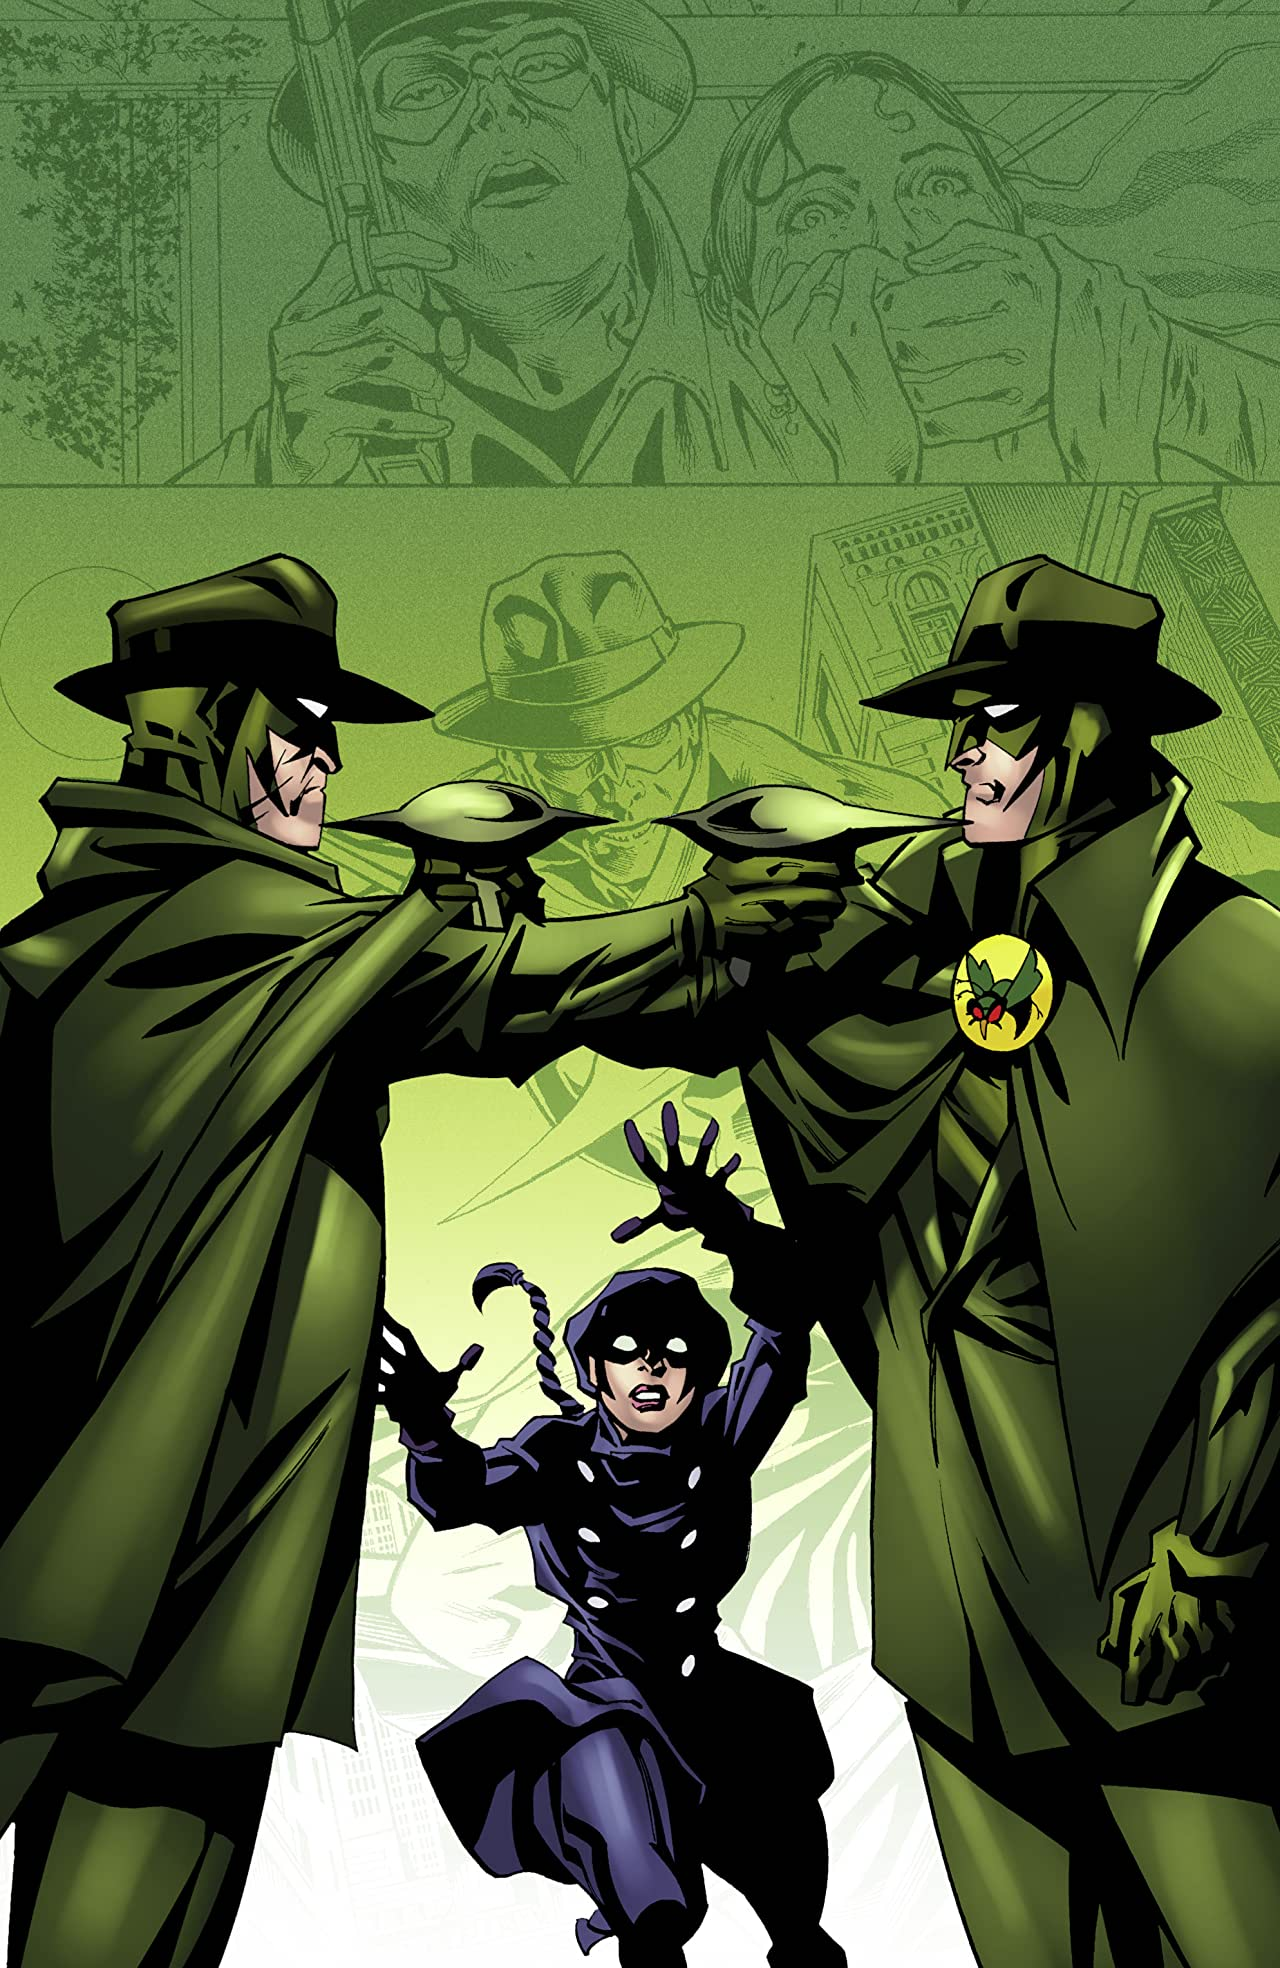 Green Hornet Vol. 5: Outcast